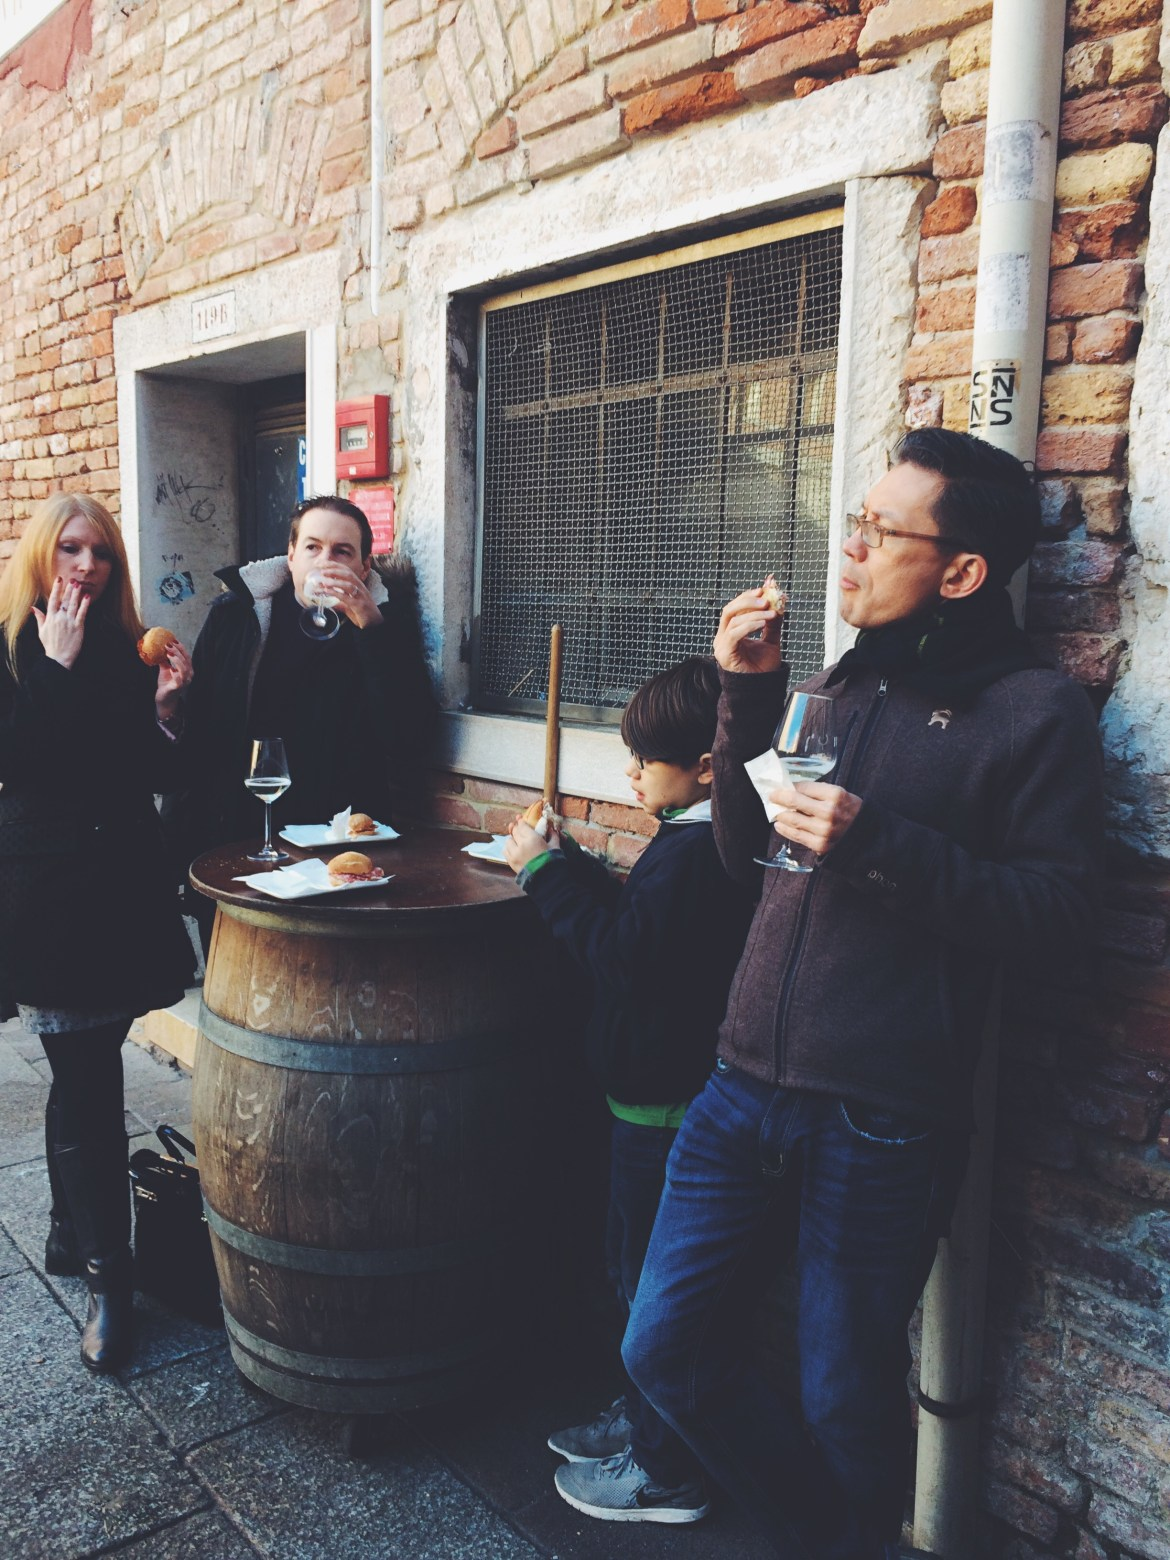 Walks of Italy Venice Food Tour, Eating in Venice